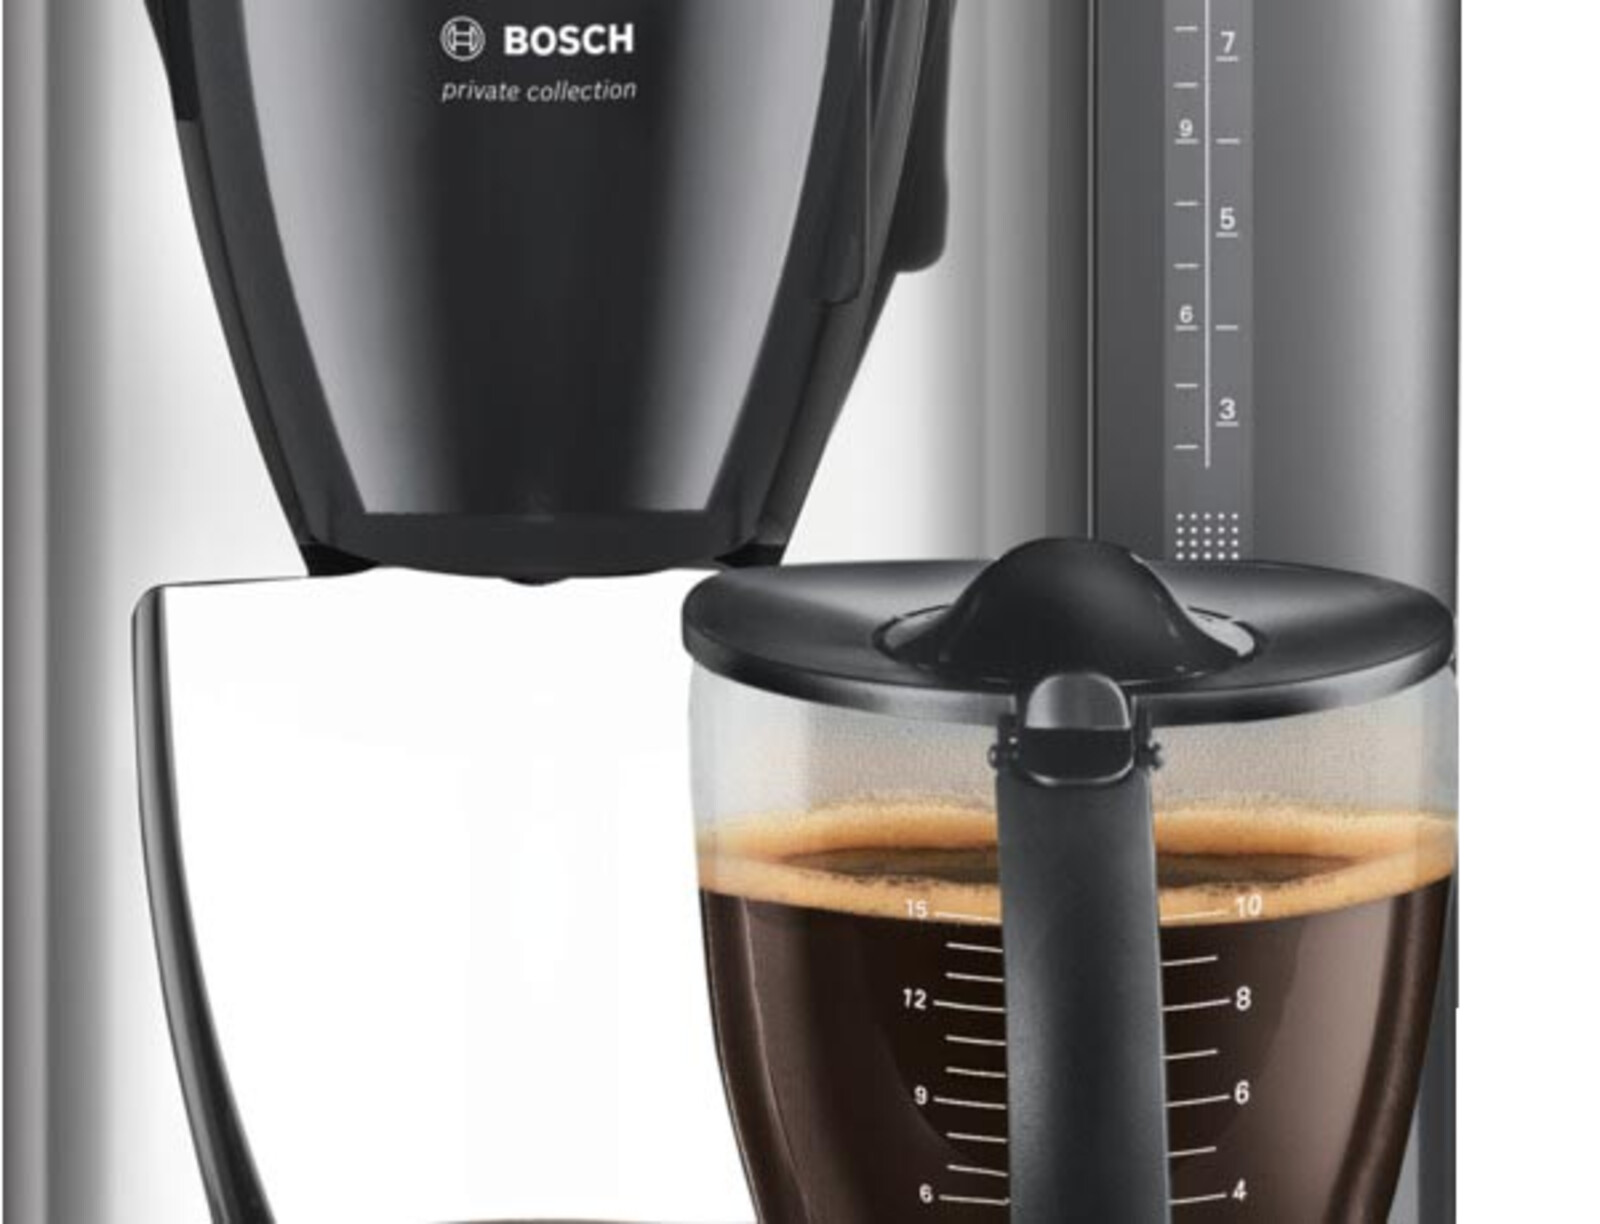 bosch tka6643 kaffeemaschine schwarz ebay. Black Bedroom Furniture Sets. Home Design Ideas